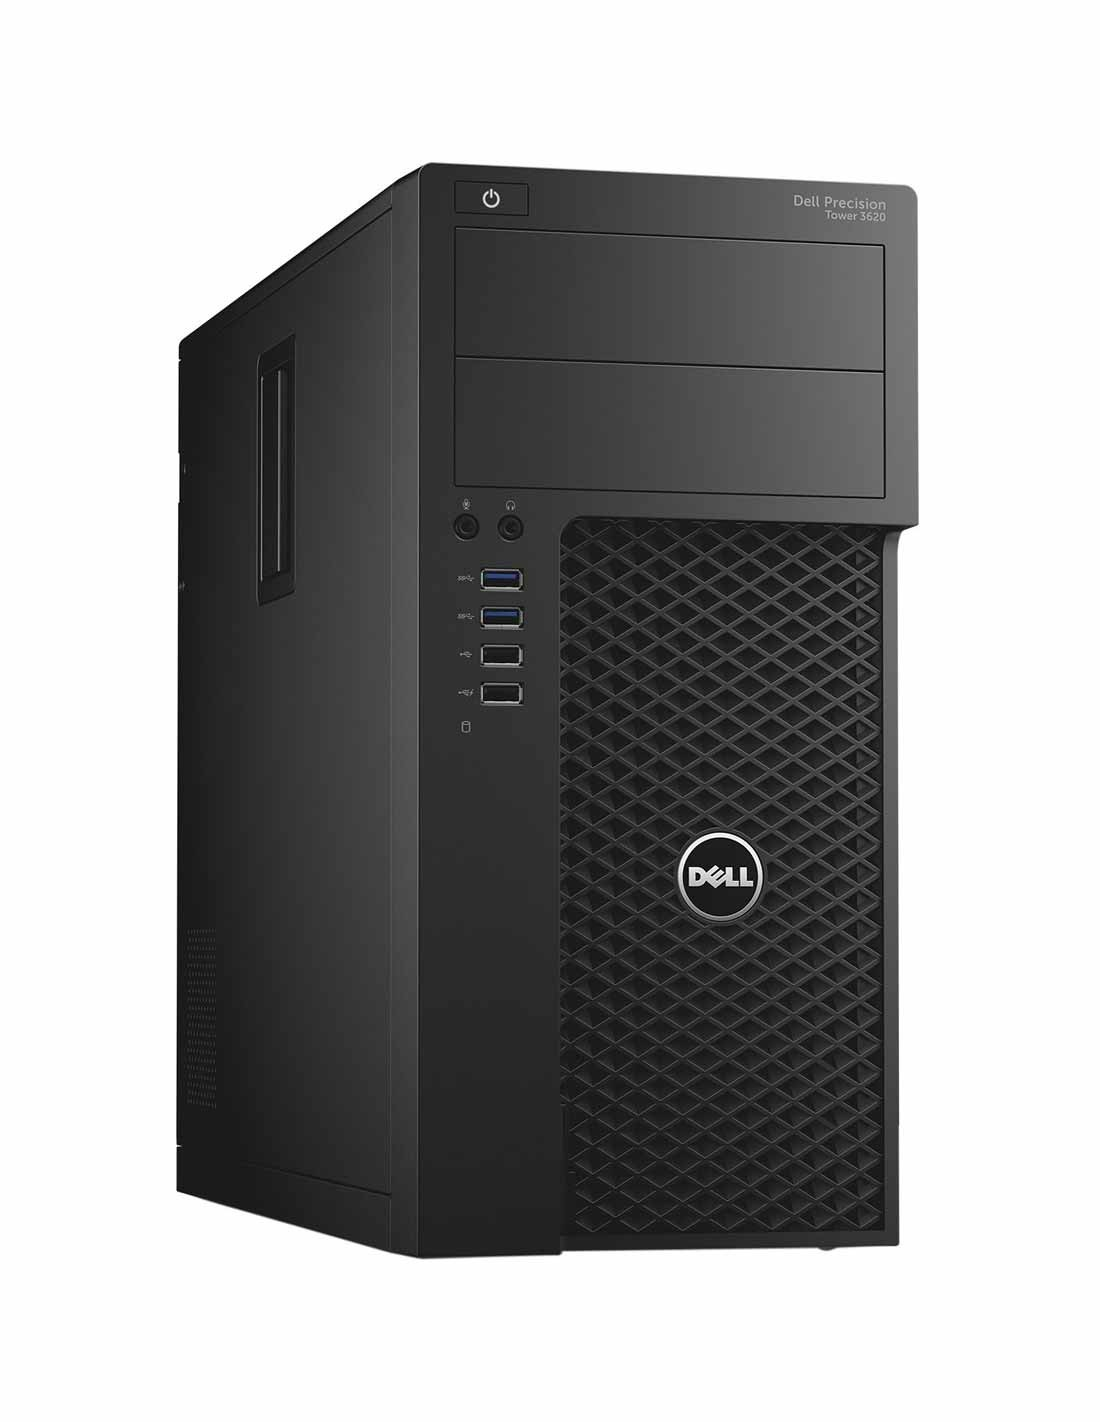 Dell Precision Tower 3620 E3-1270 v6 at the cheapest prices and fast free delivery in Dubai UAE